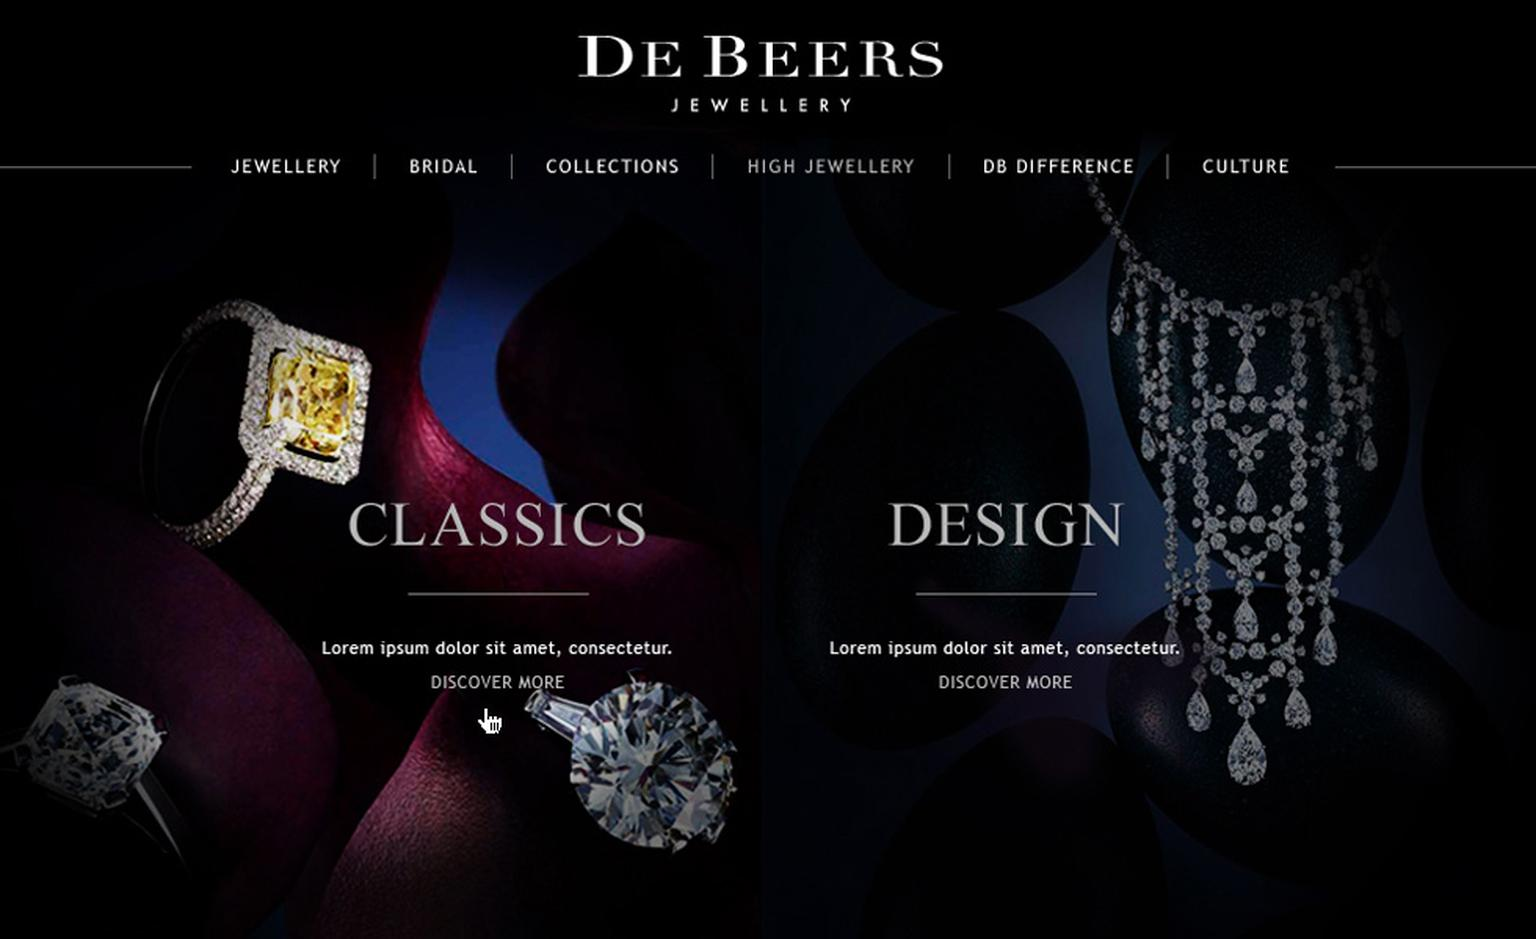 Image from De Beers new website showing the High Jewellery collections page